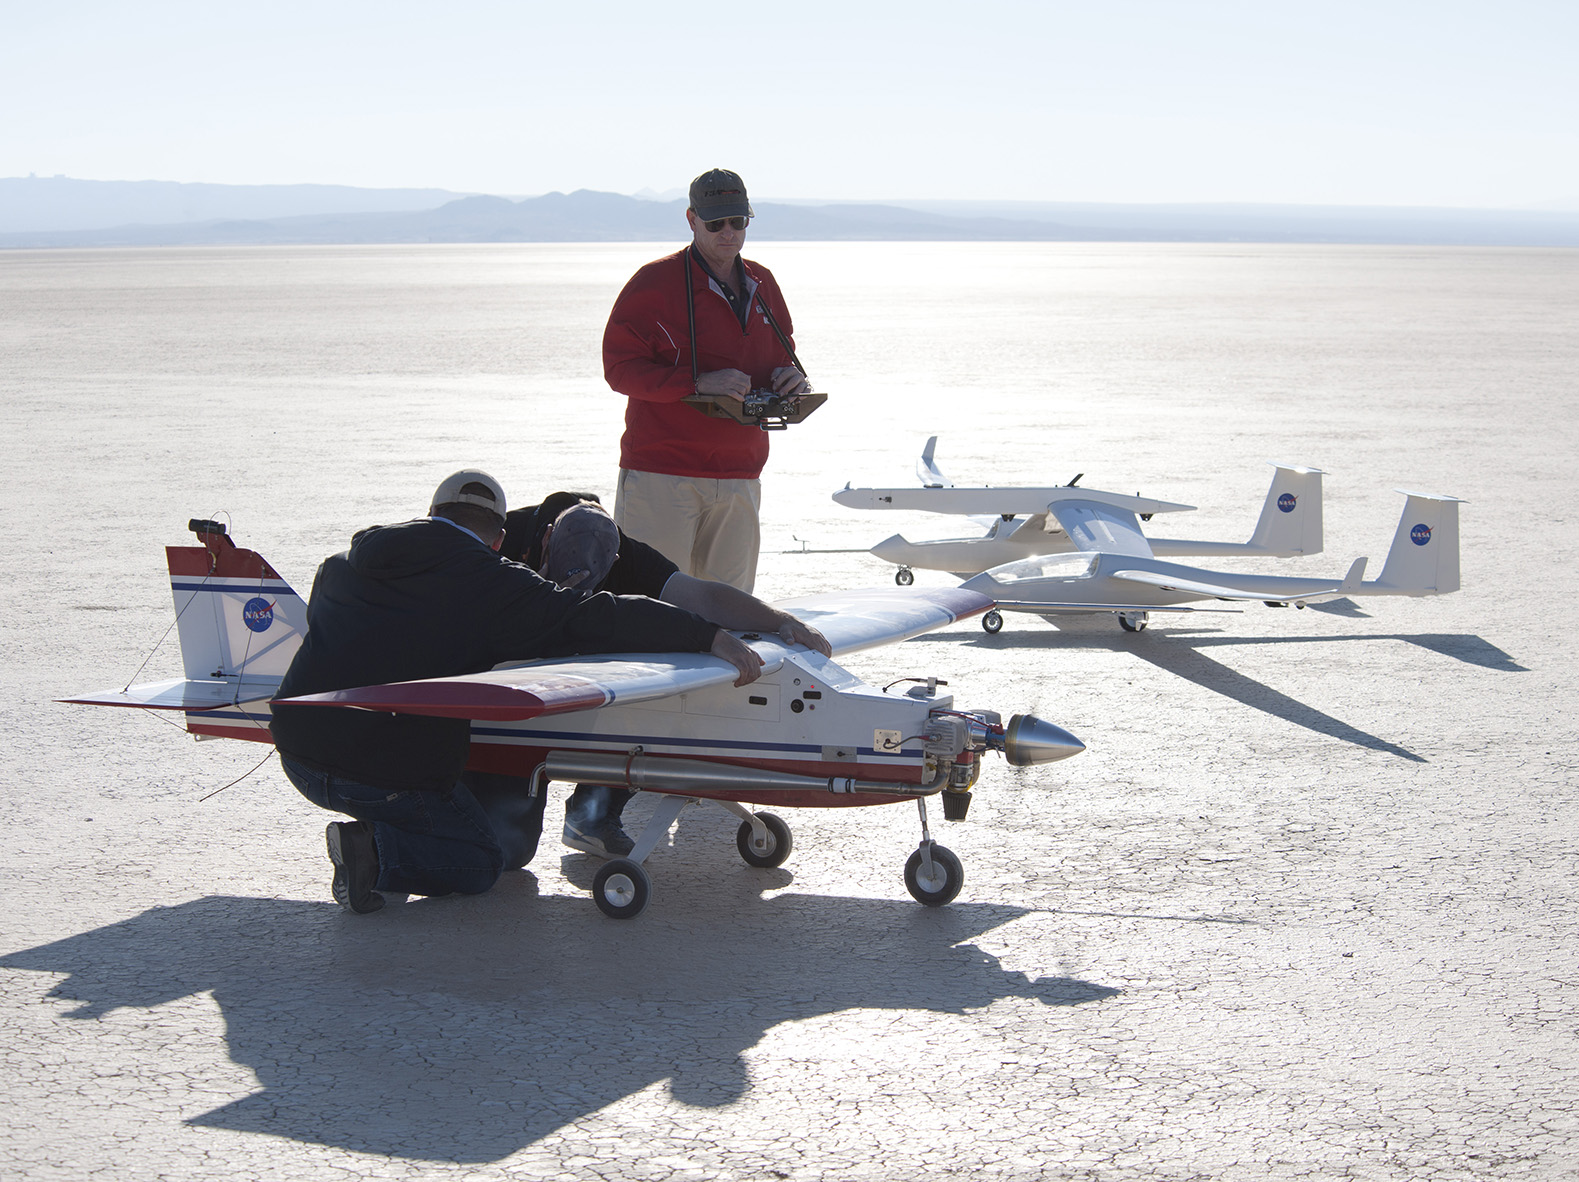 Towed Glider Air-Launch System and its Towing Plane on the Ground with Ground Crew for Sense of Scale